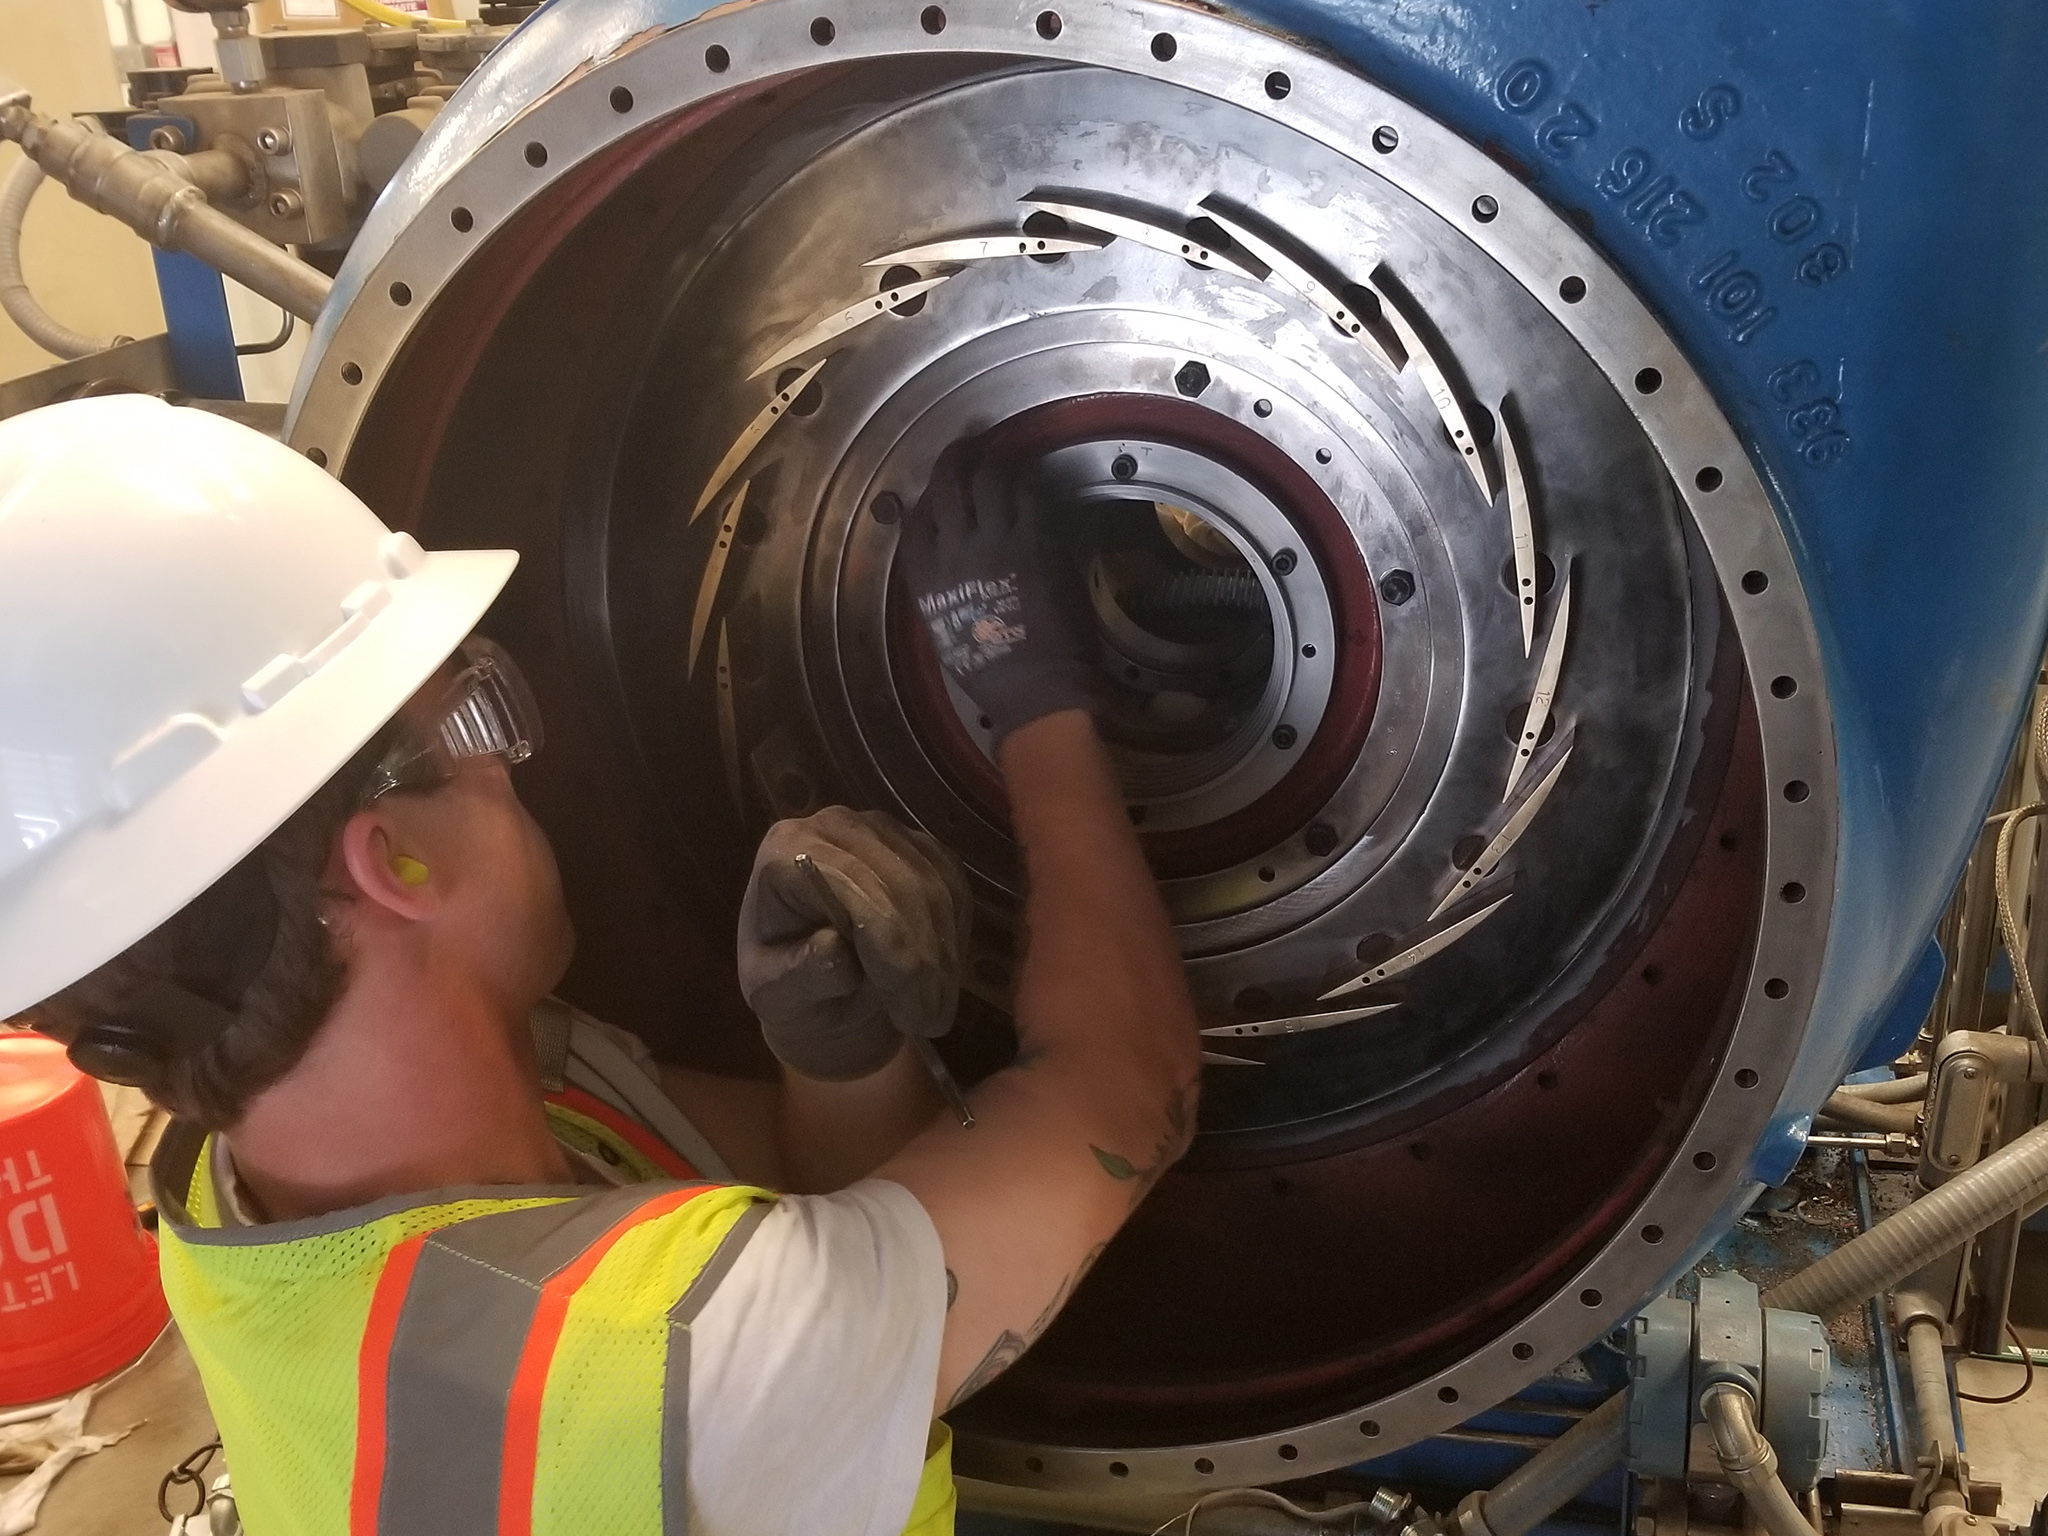 Lone Star manufacturers all parts for these blowers to allow fast and efficient services. Lamson, Gardner Denver, HSi, Atlas Copco, Howden, Siemens, HV-TURBO, Turblex Single Stage and Multistage Turbo Blower Field Service and Preventative Maintenance*